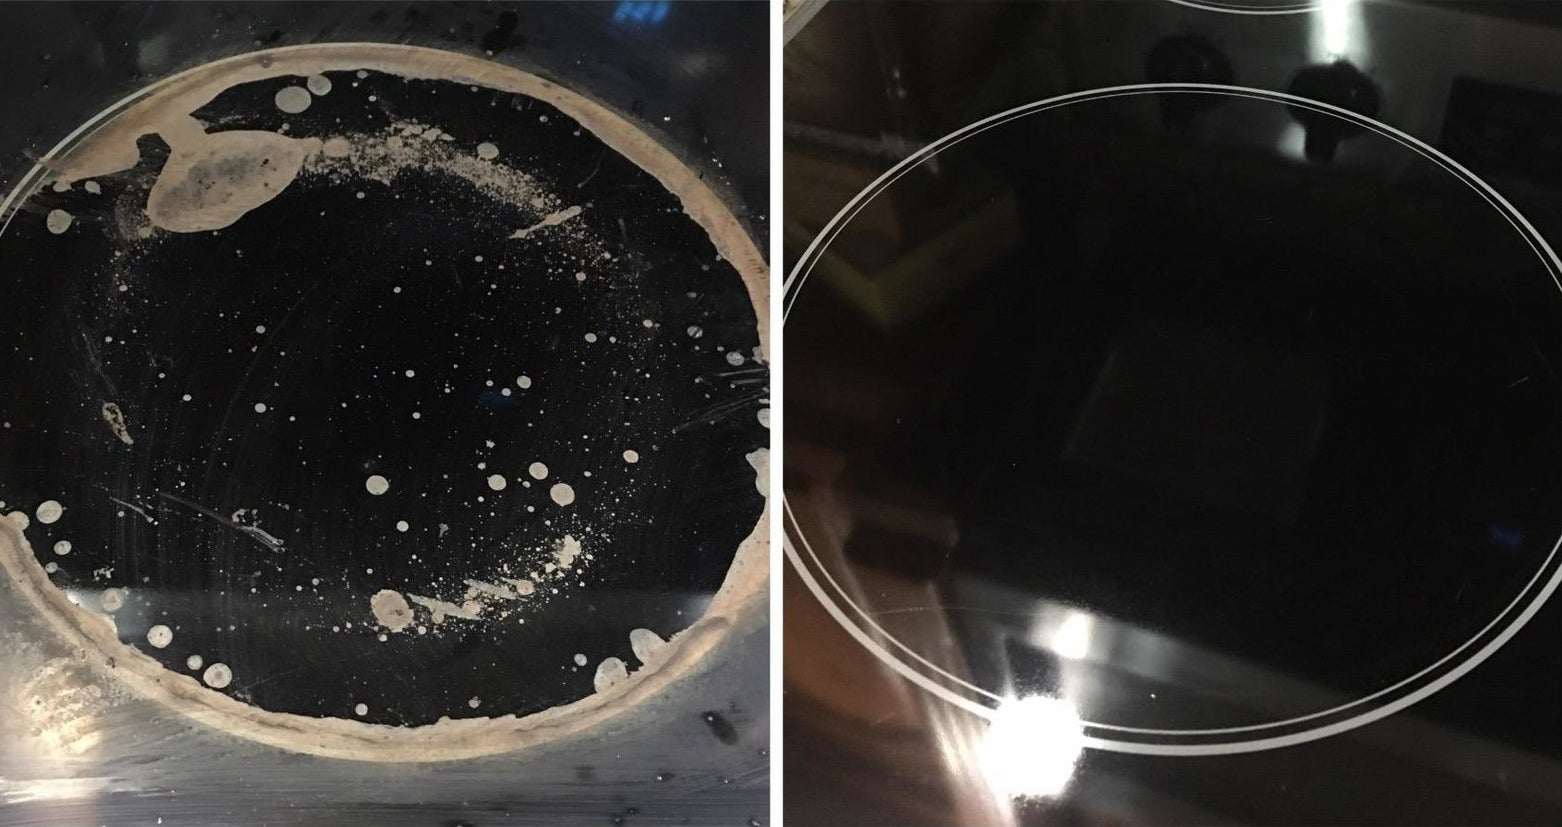 a reviewer's before and after photo of a dirty cooktop that is now clean